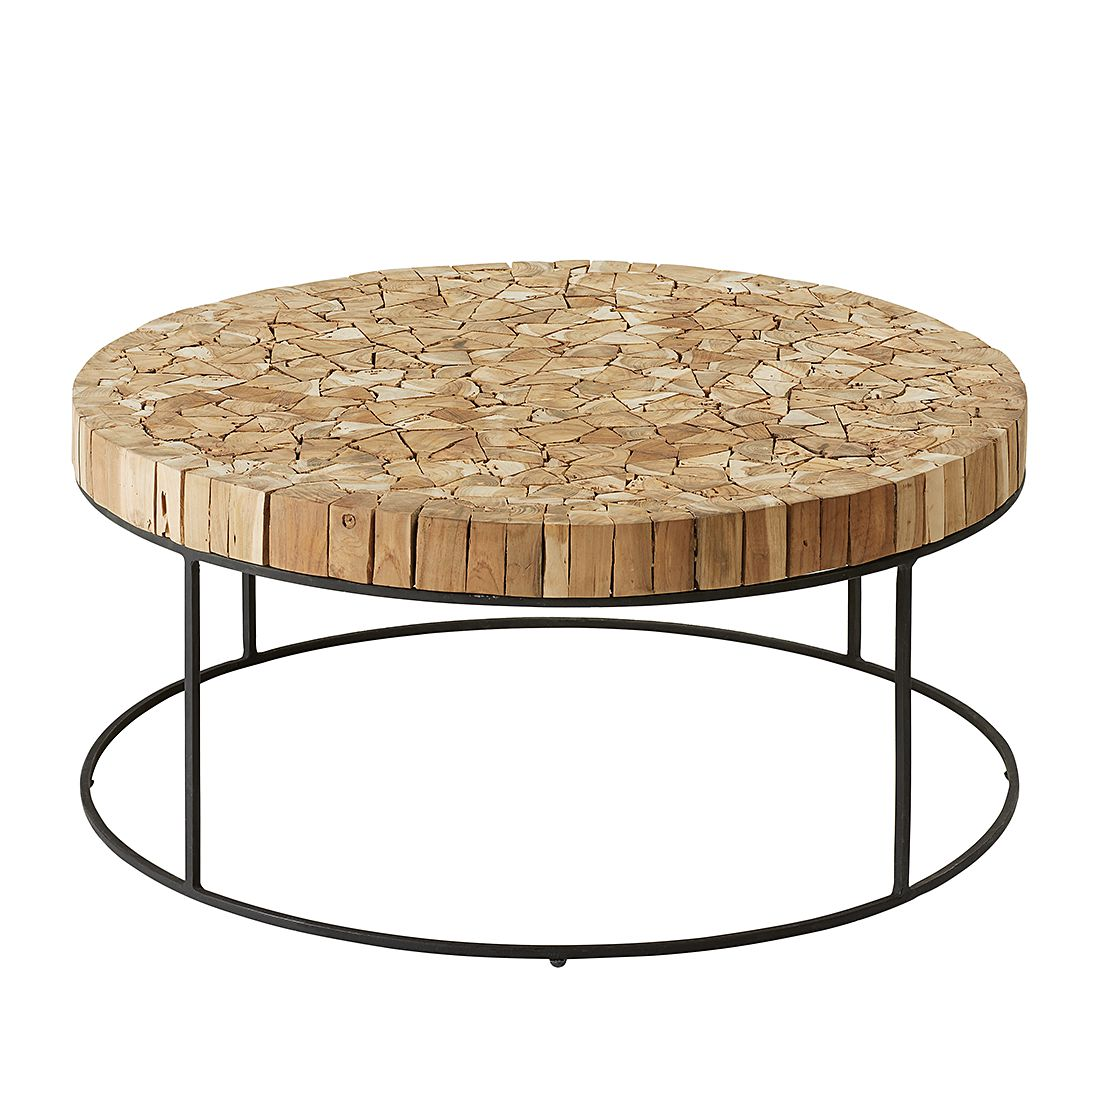 Table d'appoint Madron - Teck massif, ars manufacti